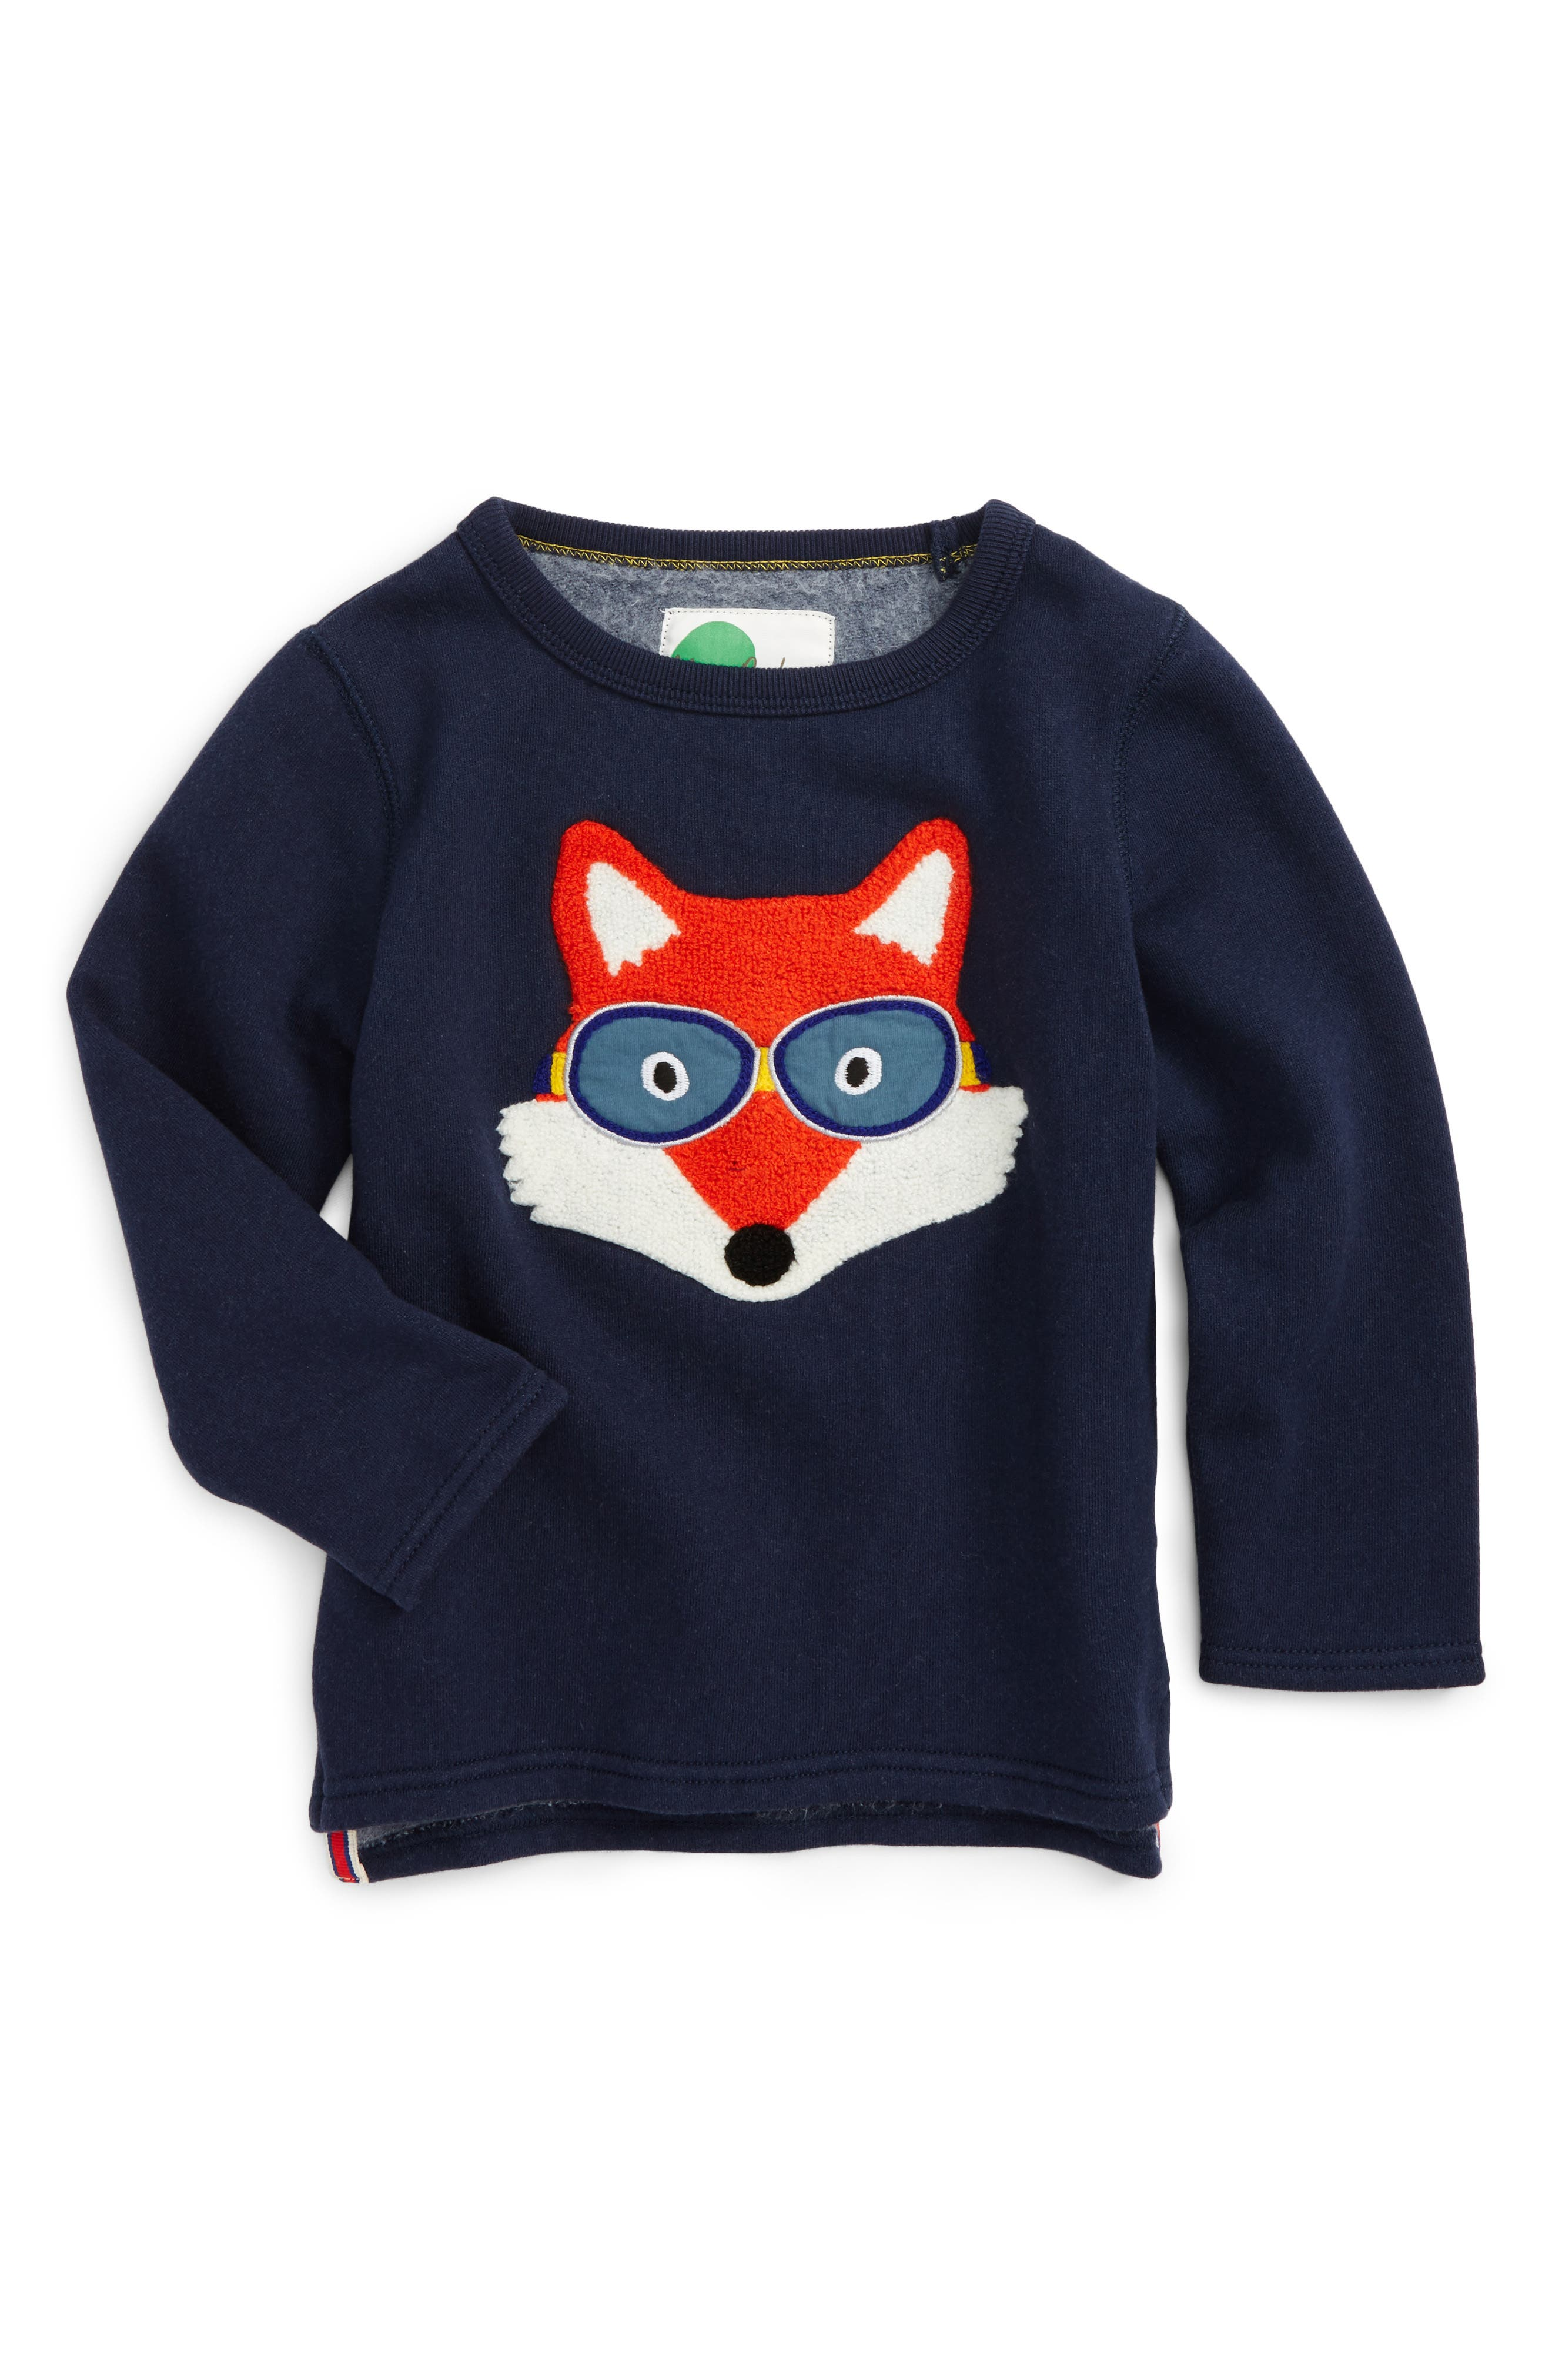 Open Road Sweatshirt,                         Main,                         color, Navy Fox